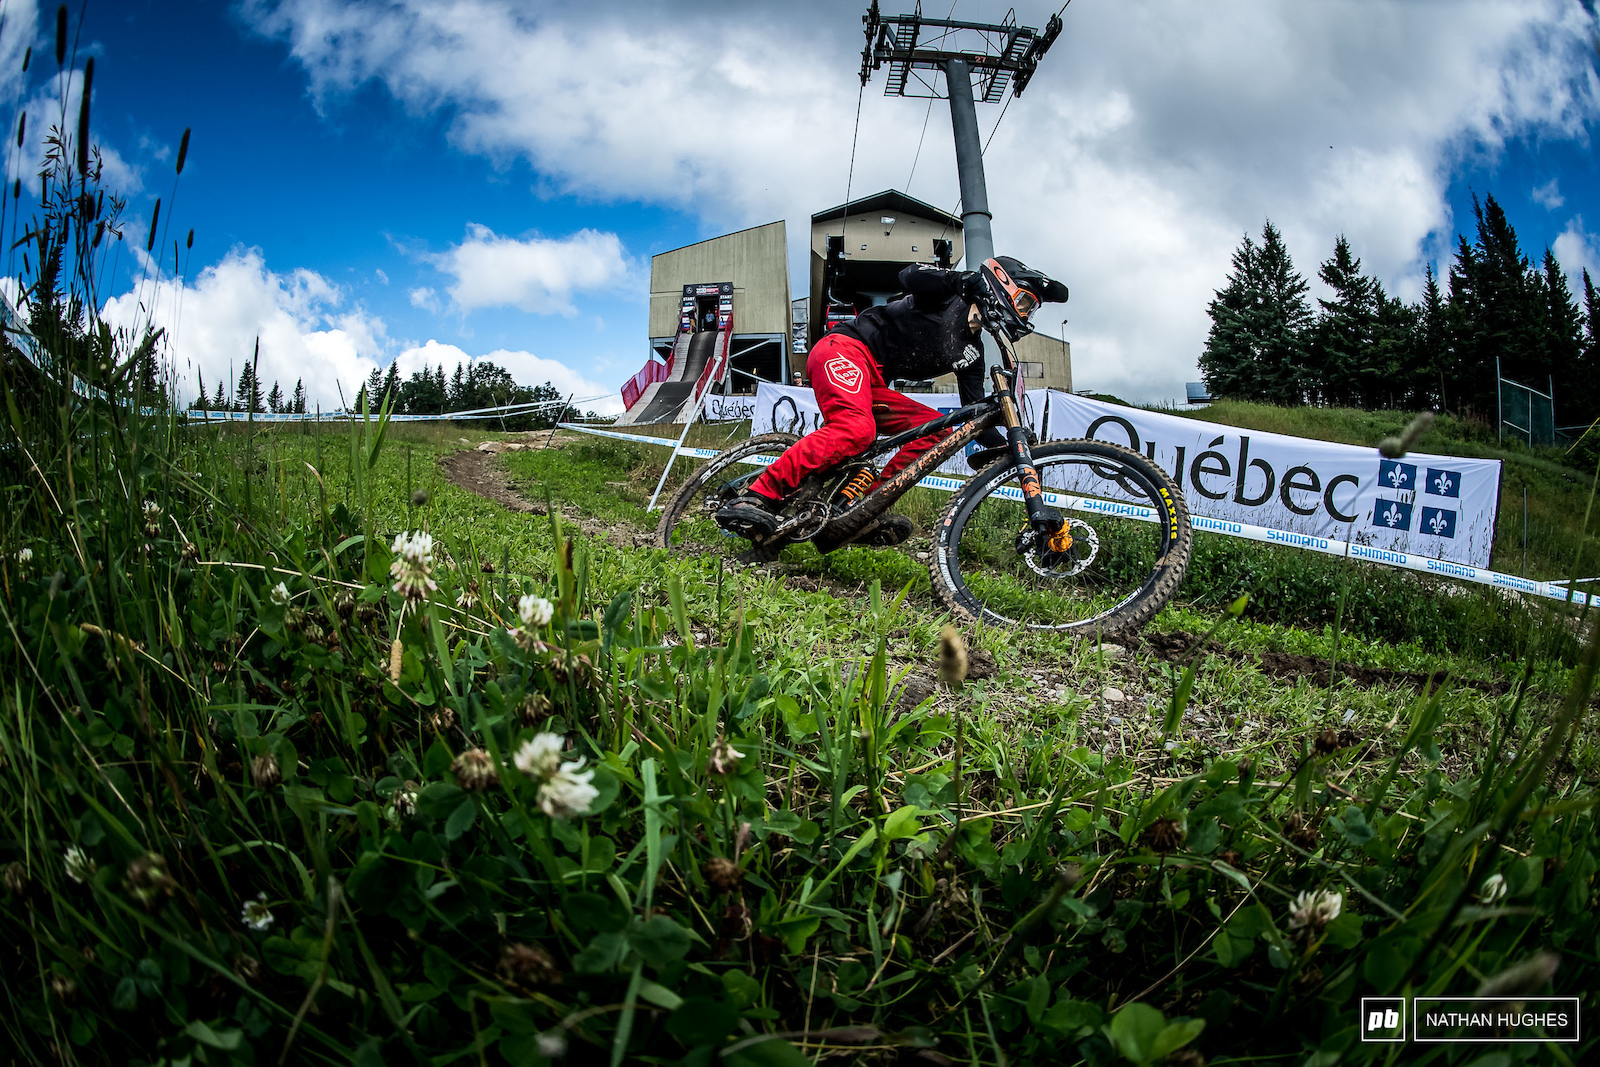 Unfotruntaely Vaea Verbeeck had less than no luck today on home soil flatting as an unprotected rider.